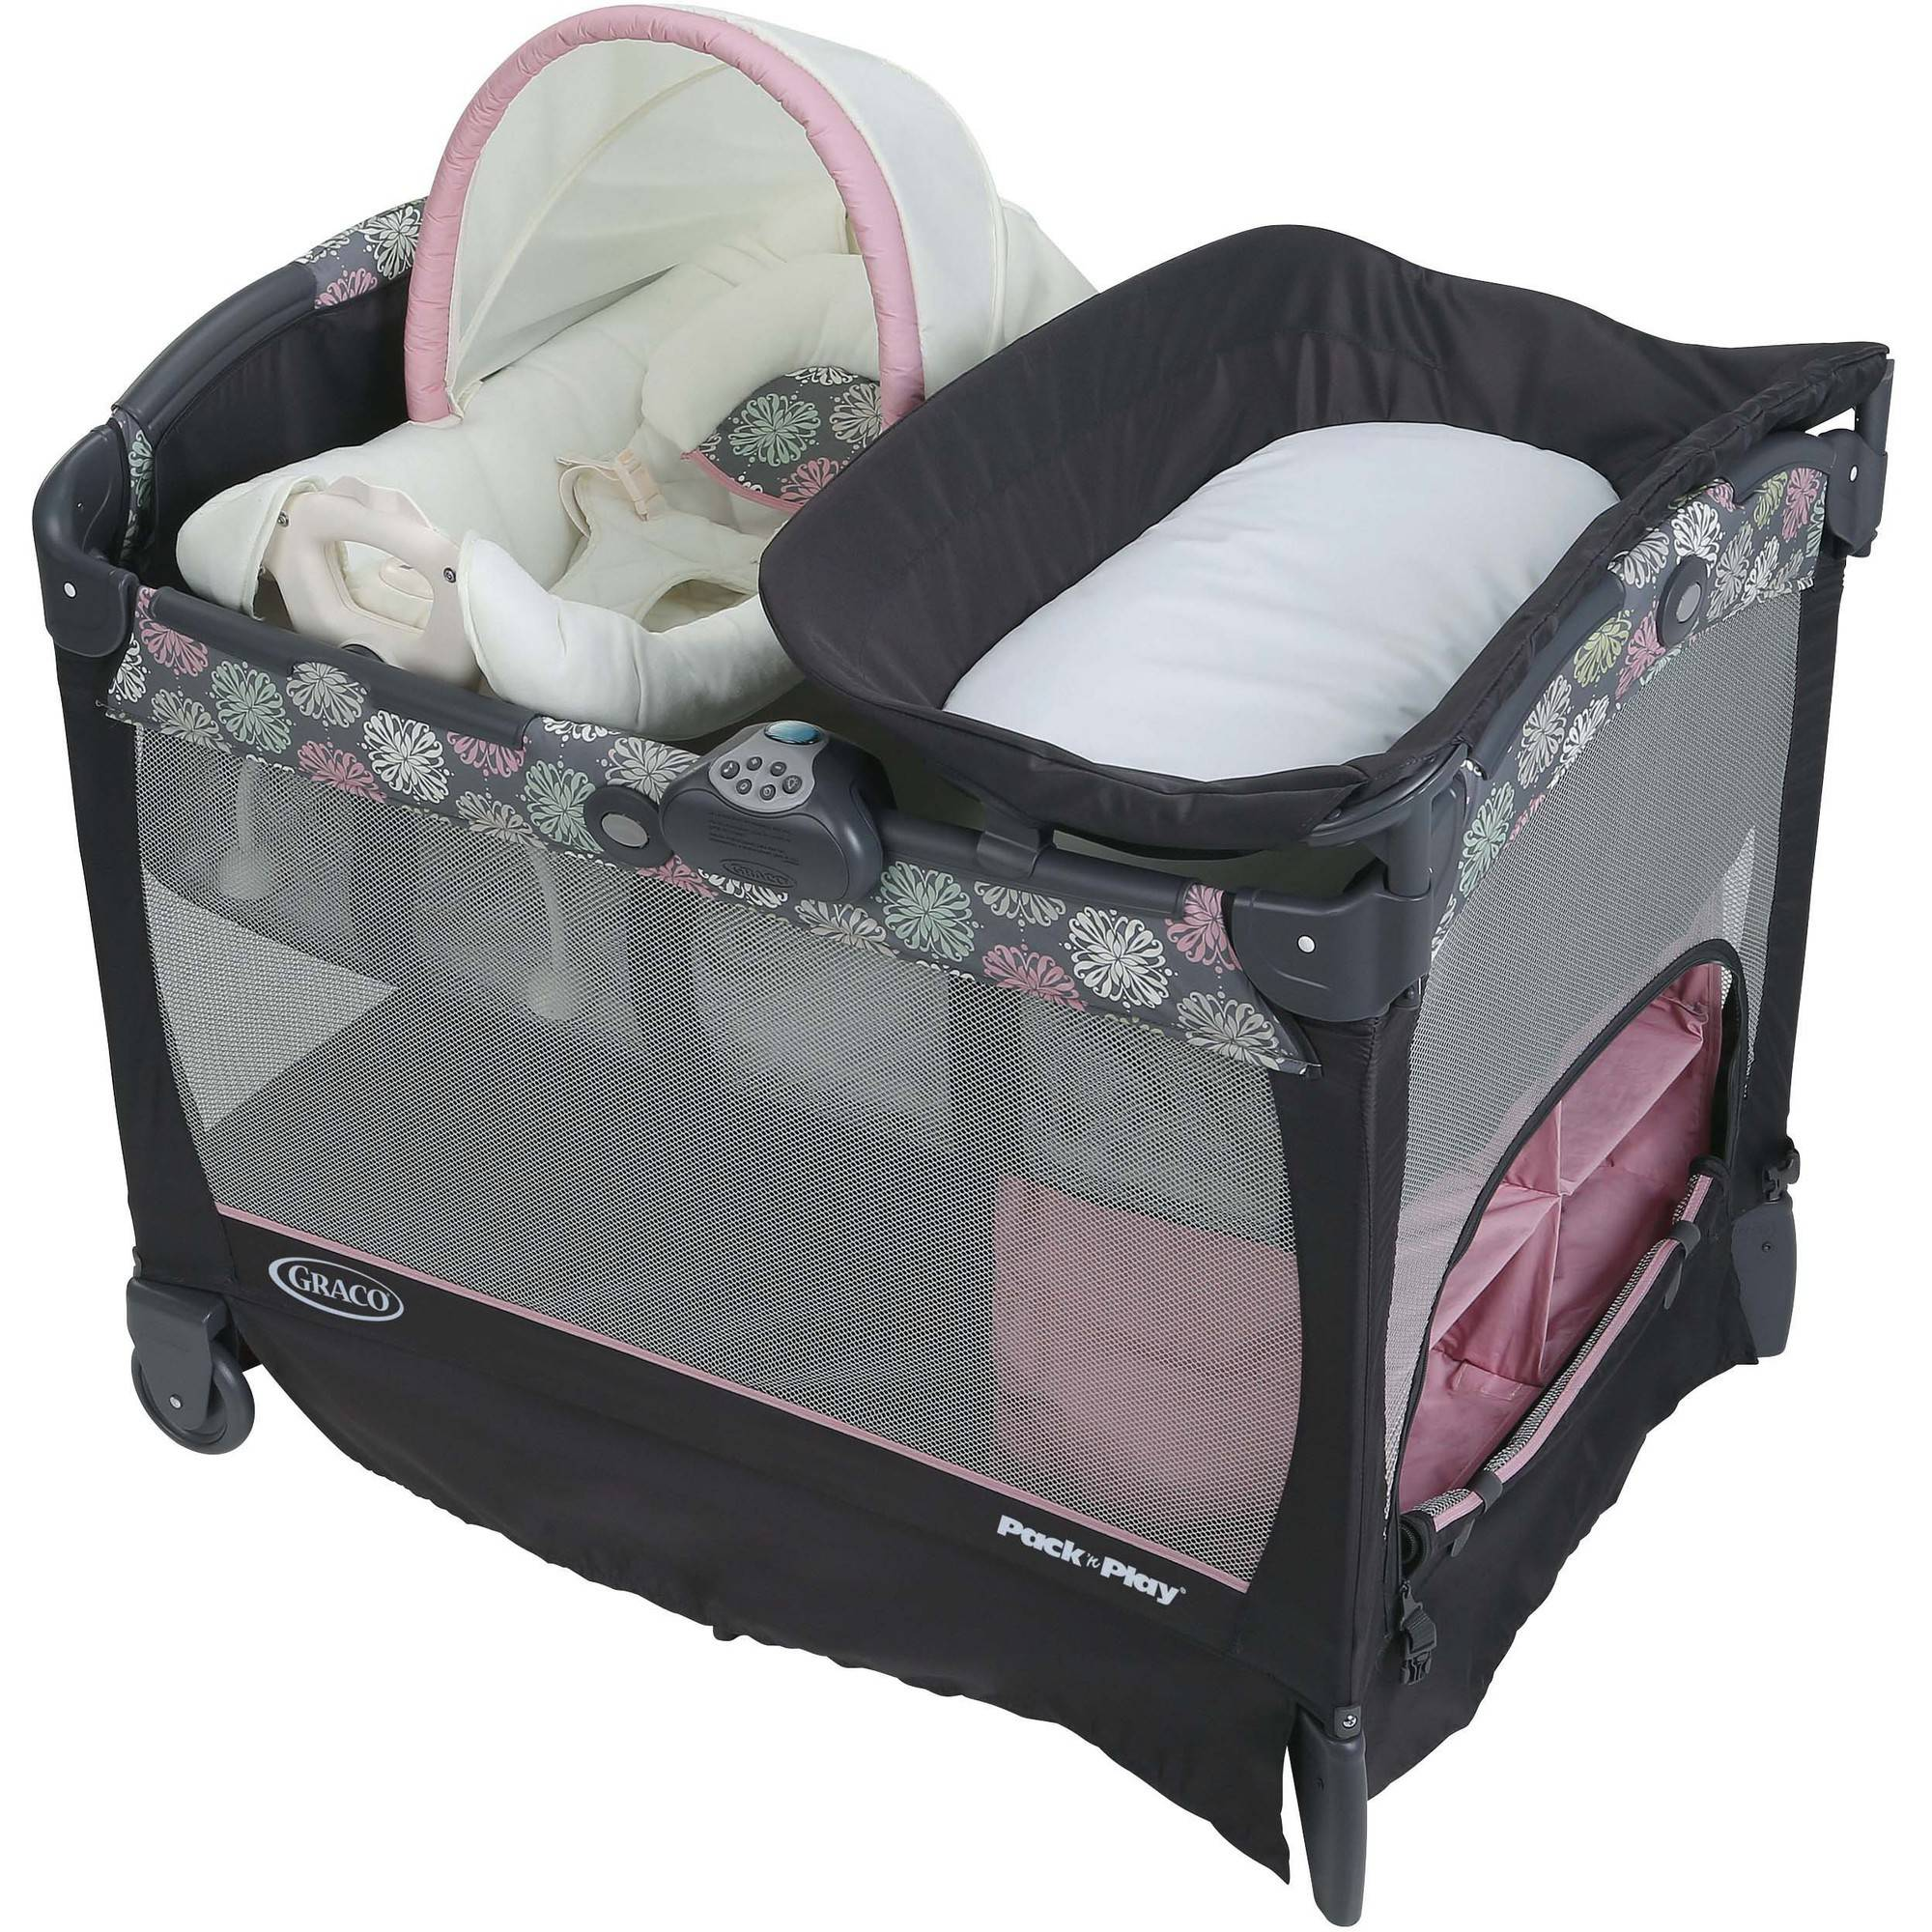 Graco Pack U0027N Play Playard With Cuddle Cove Baby Seat, Addison